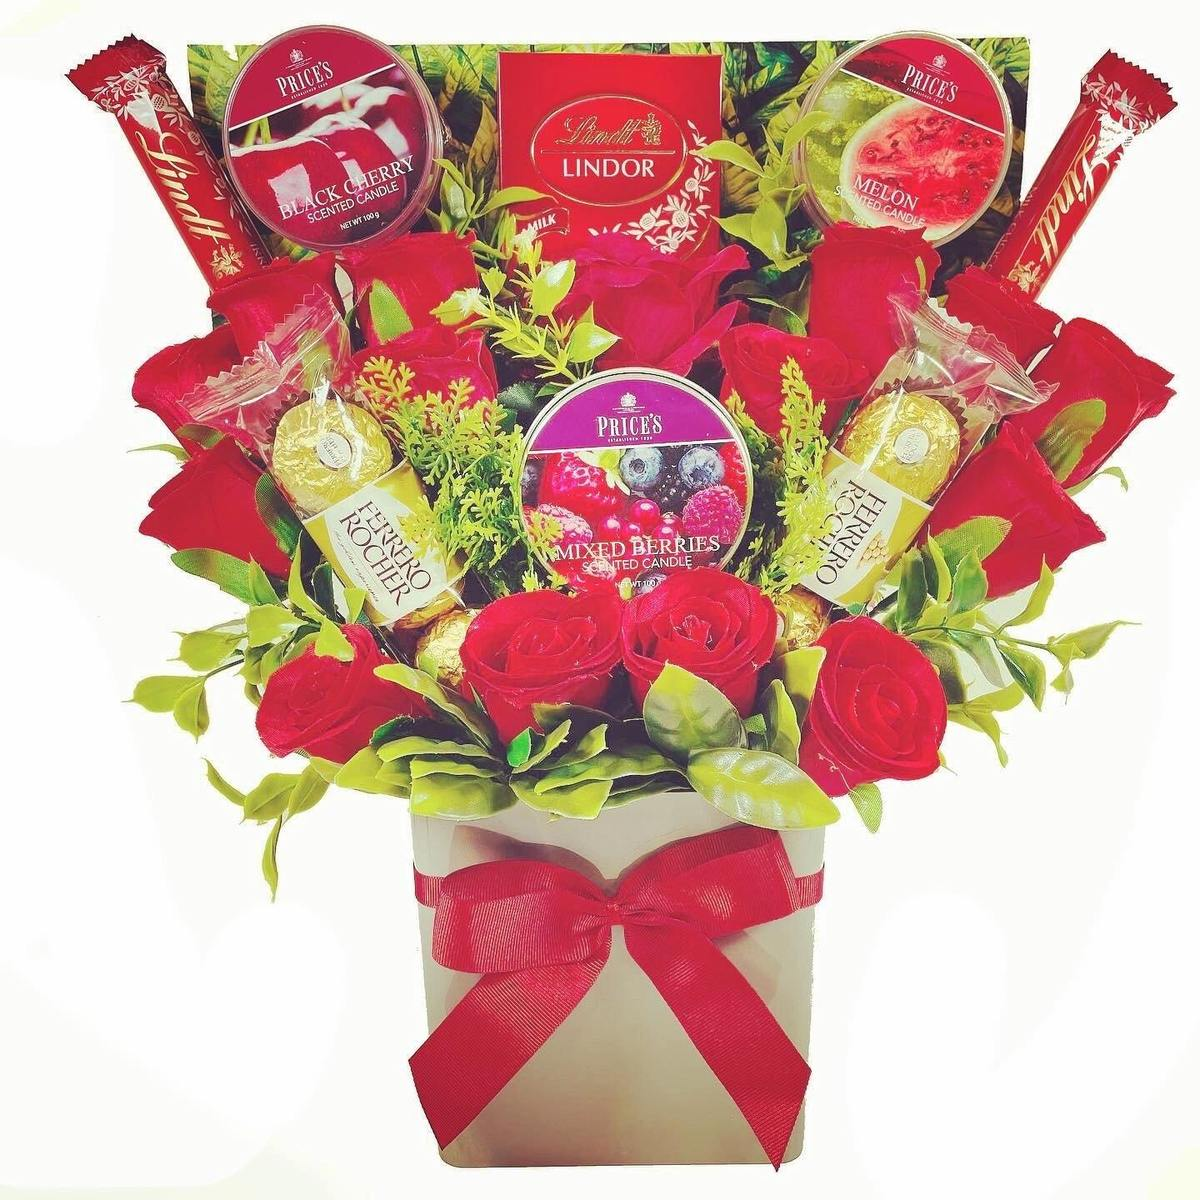 The Price's Candle and Red Rose Bouquet